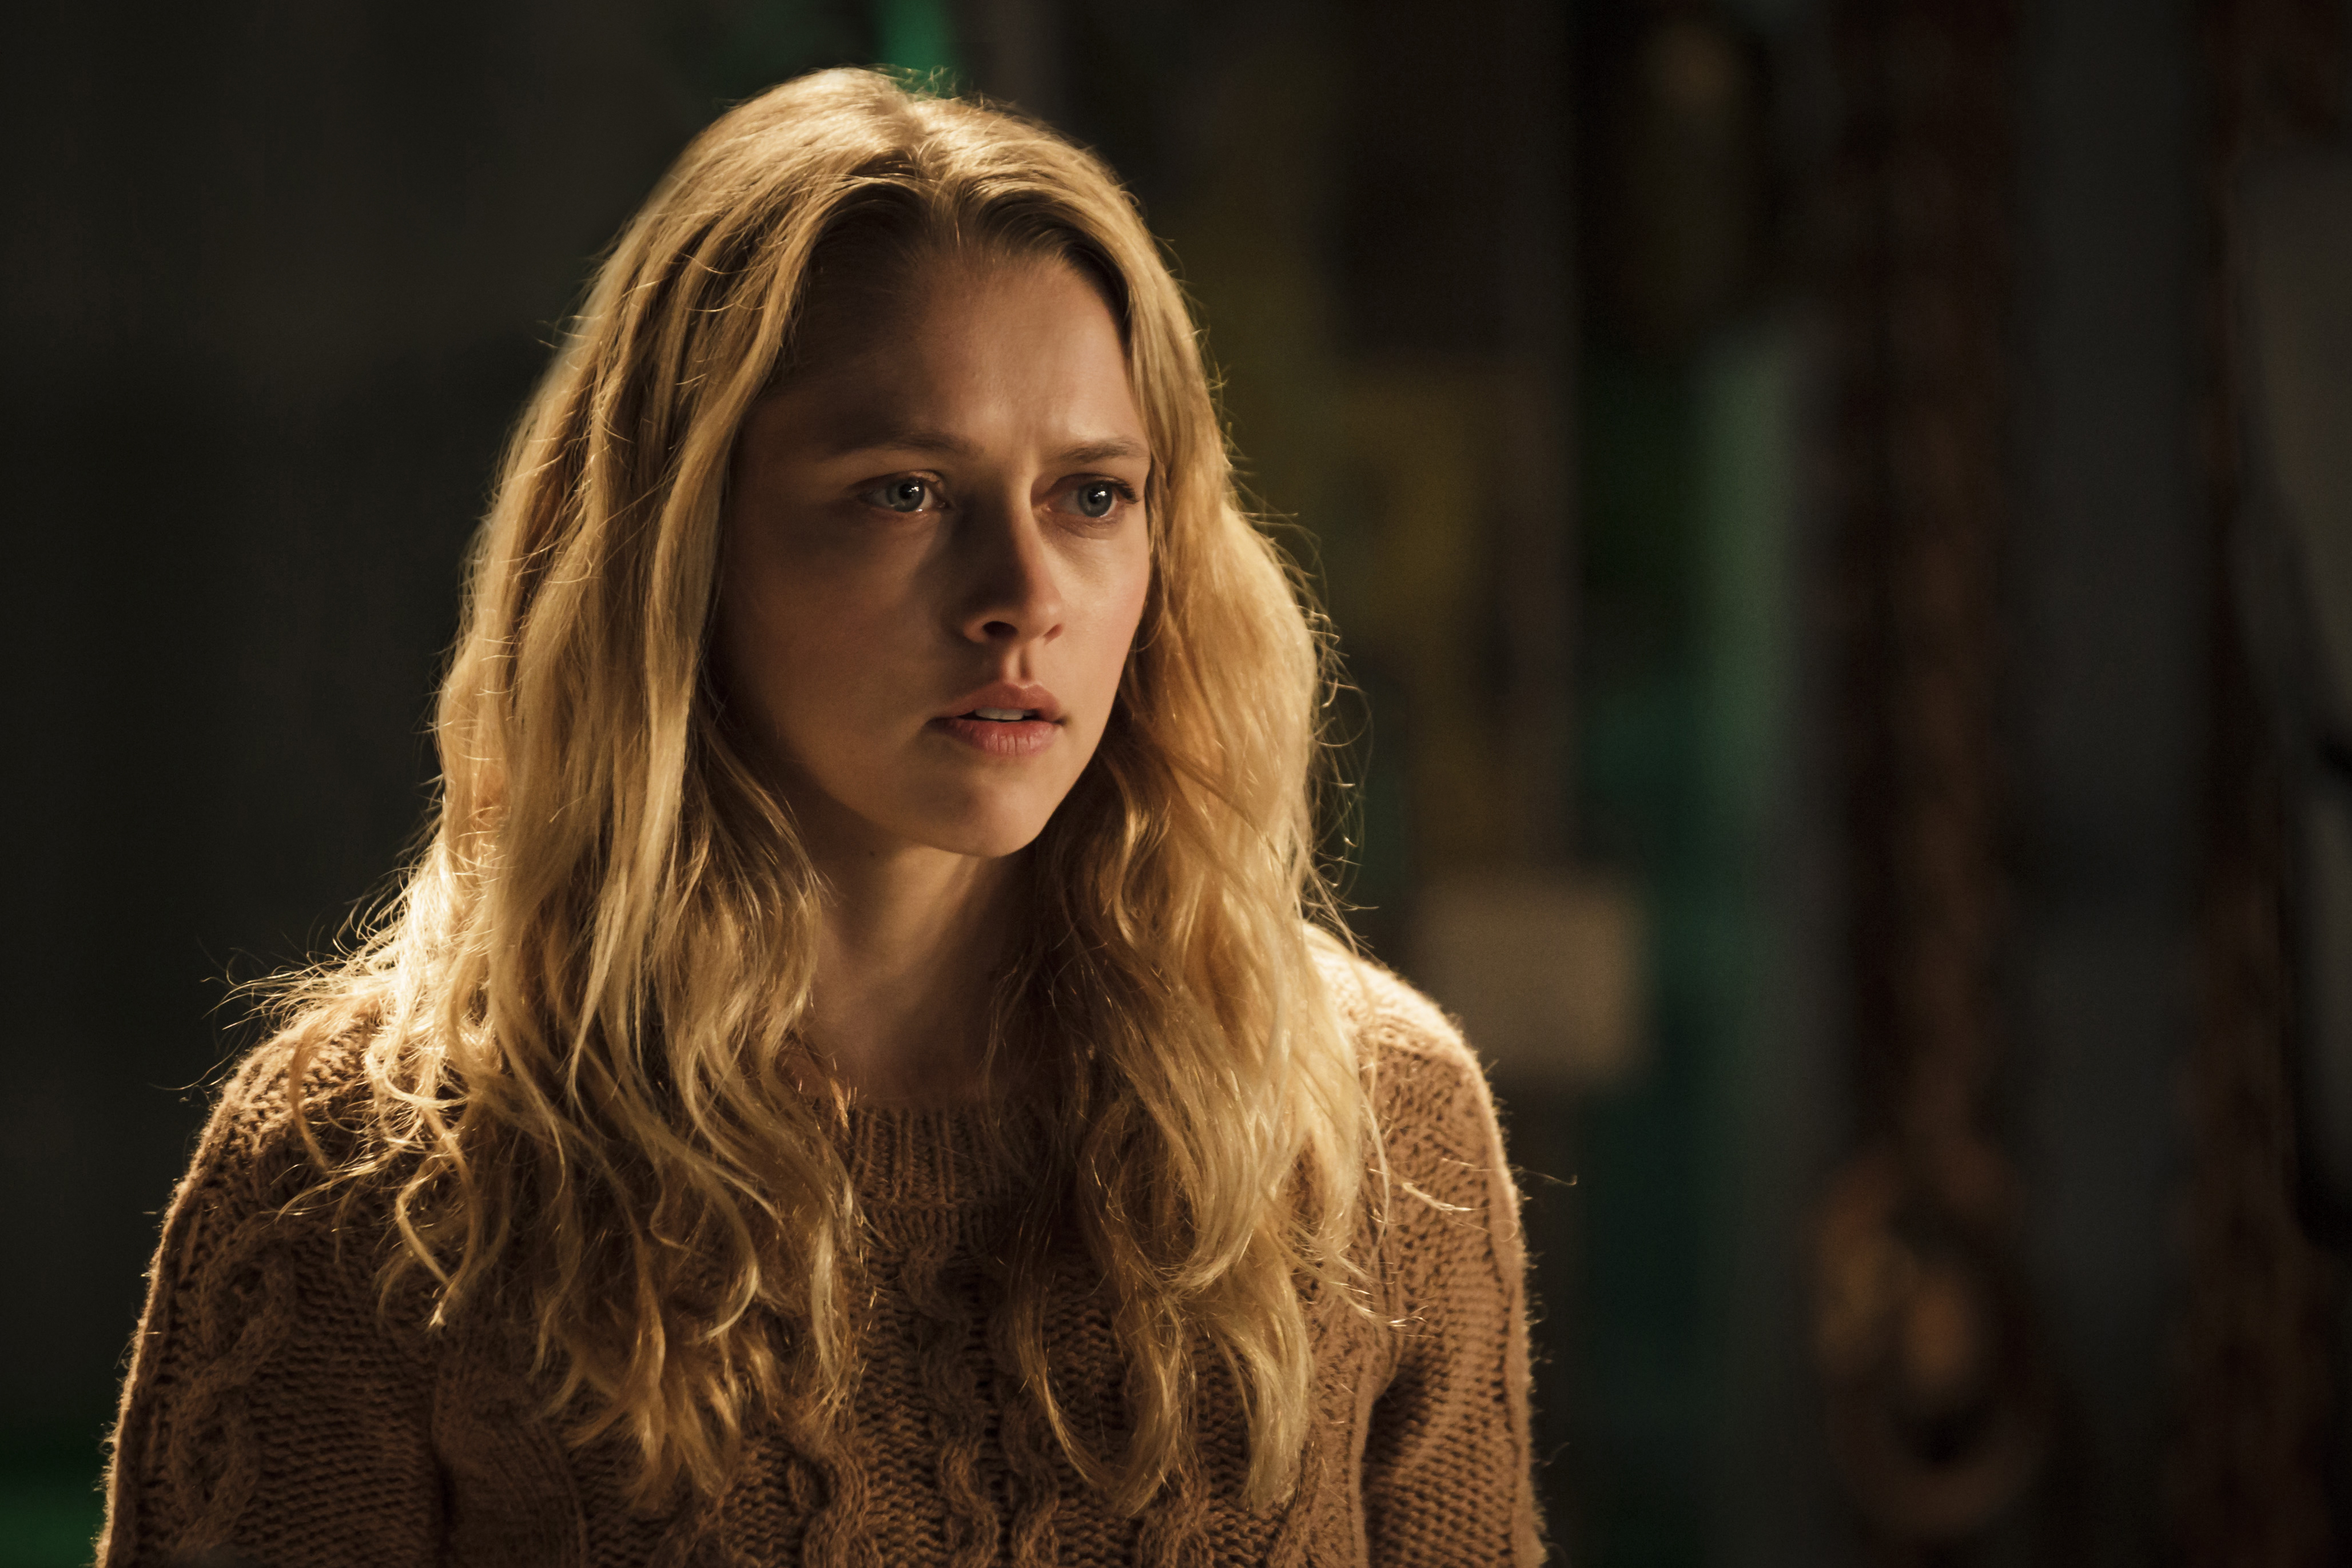 TERESA PALMER stars in WARM BODIES